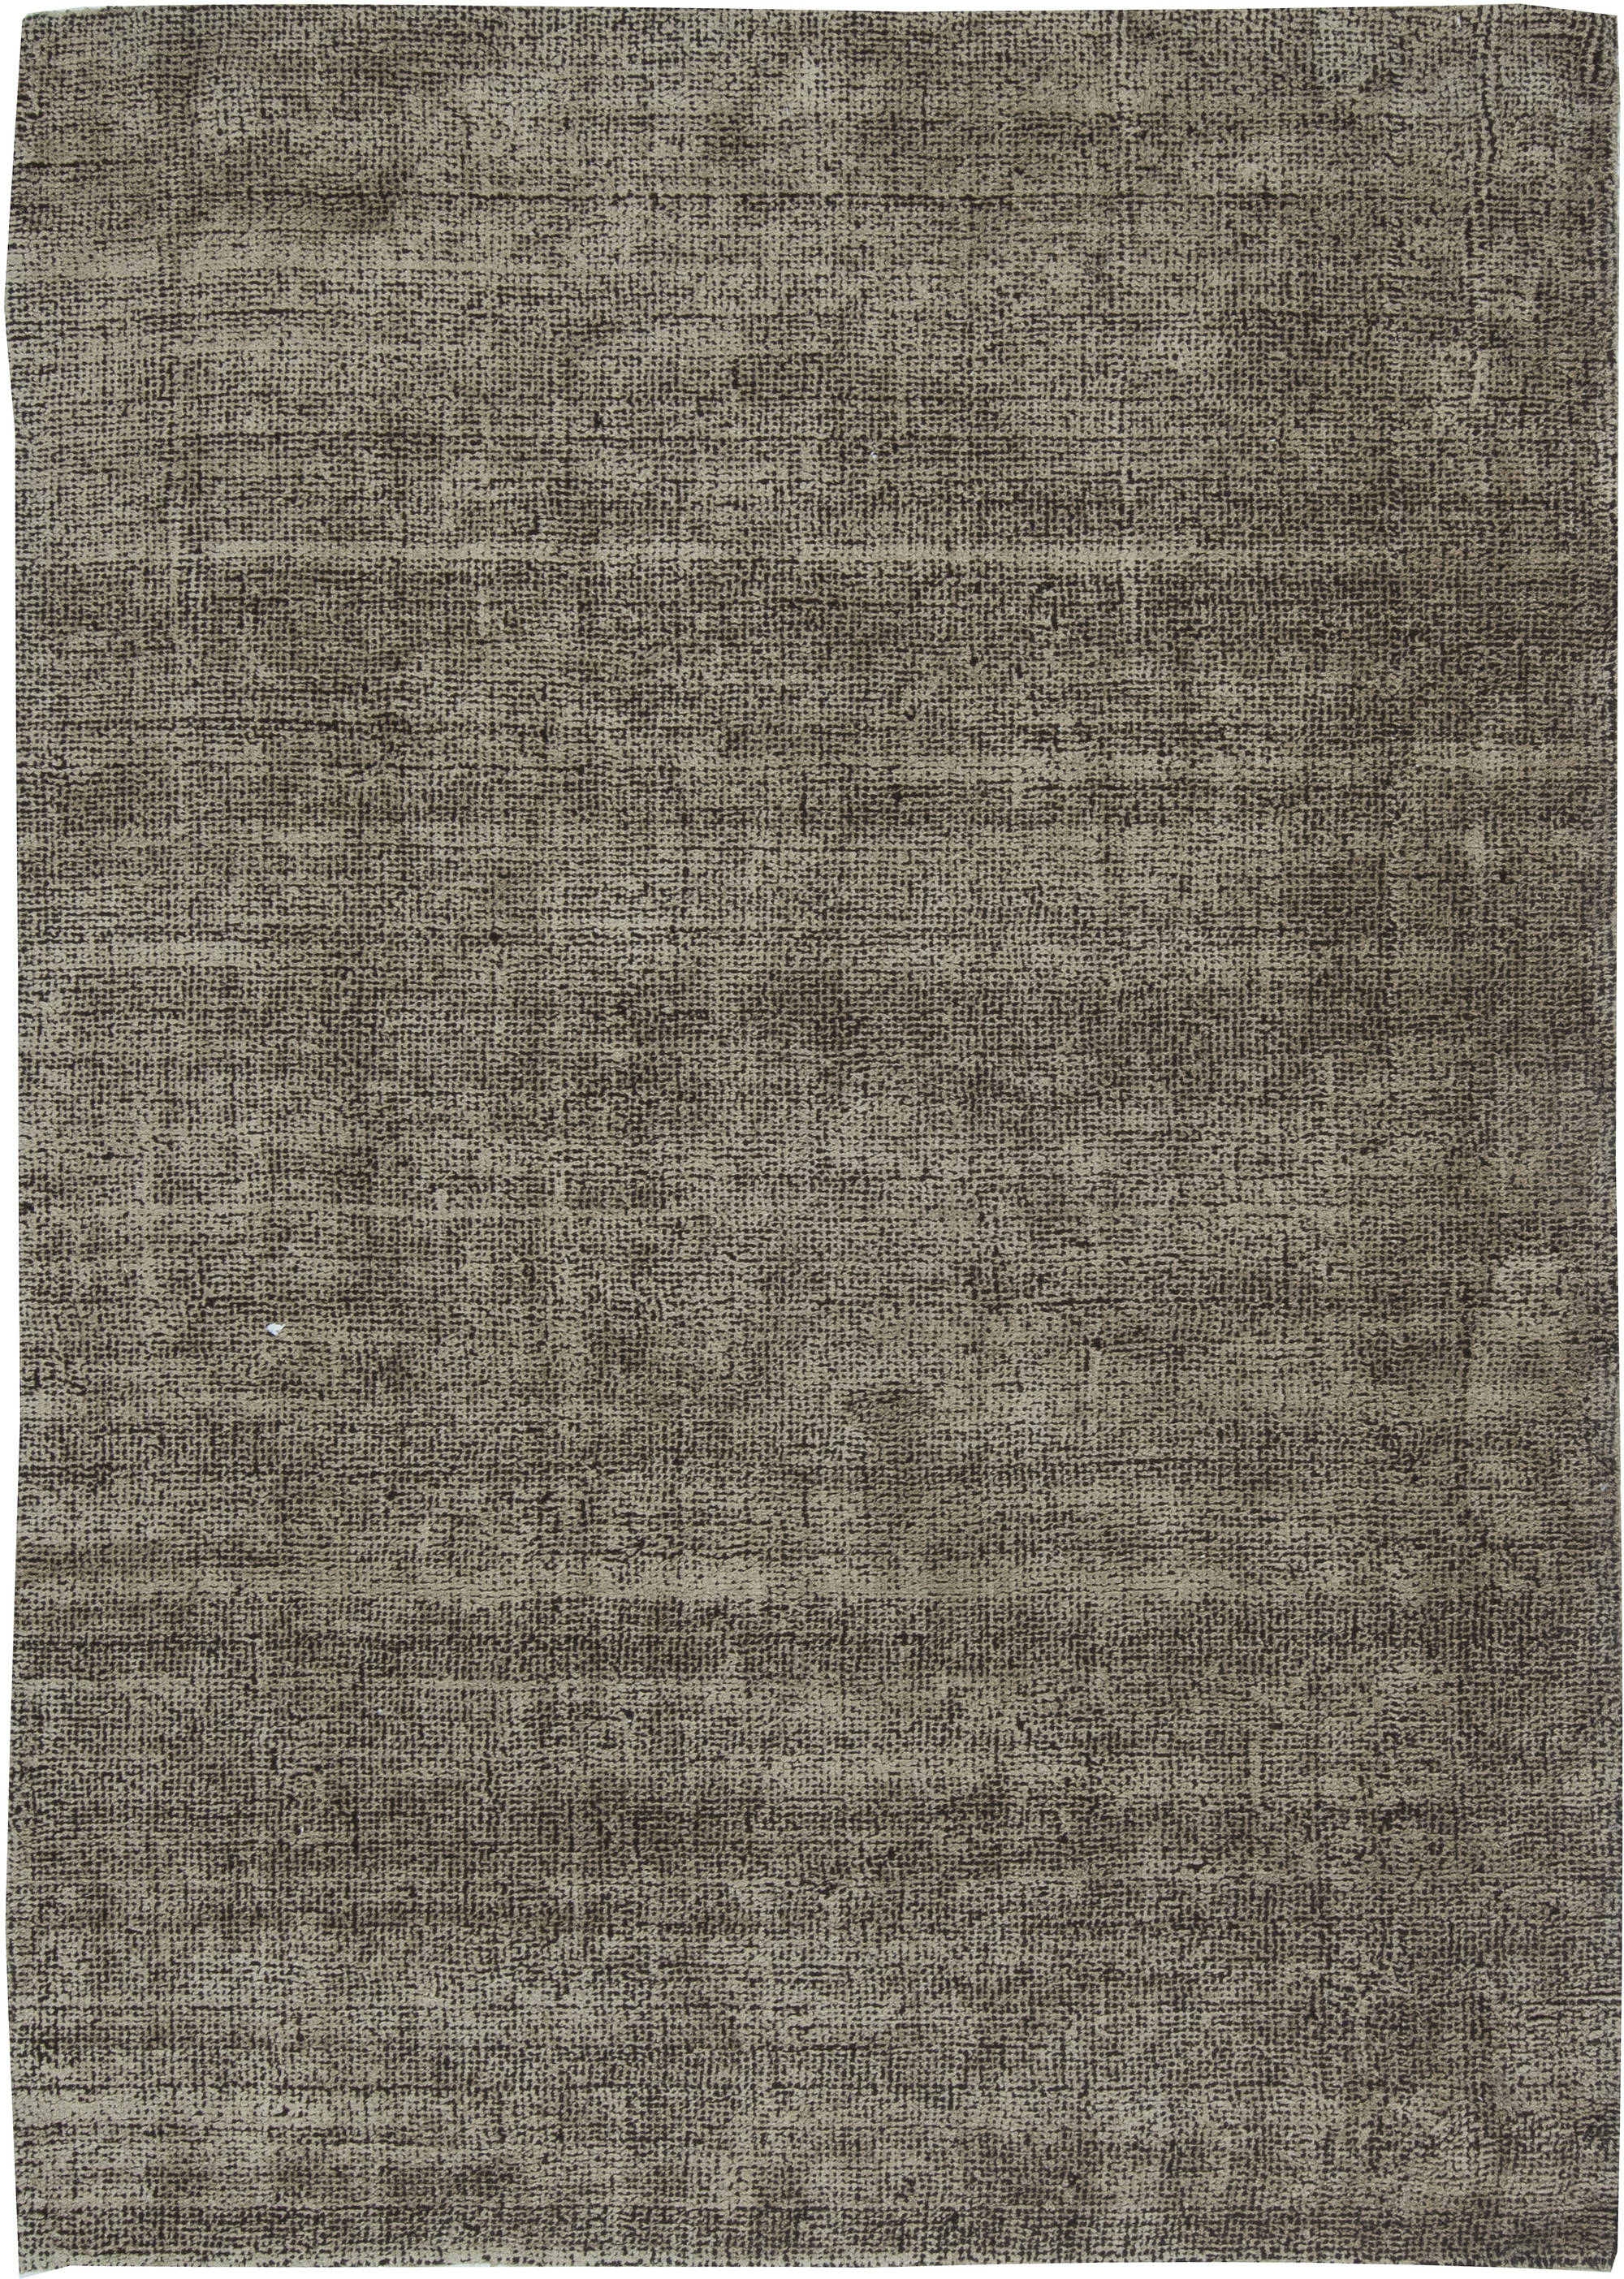 contemporary rug n11531 ZBPMIMF